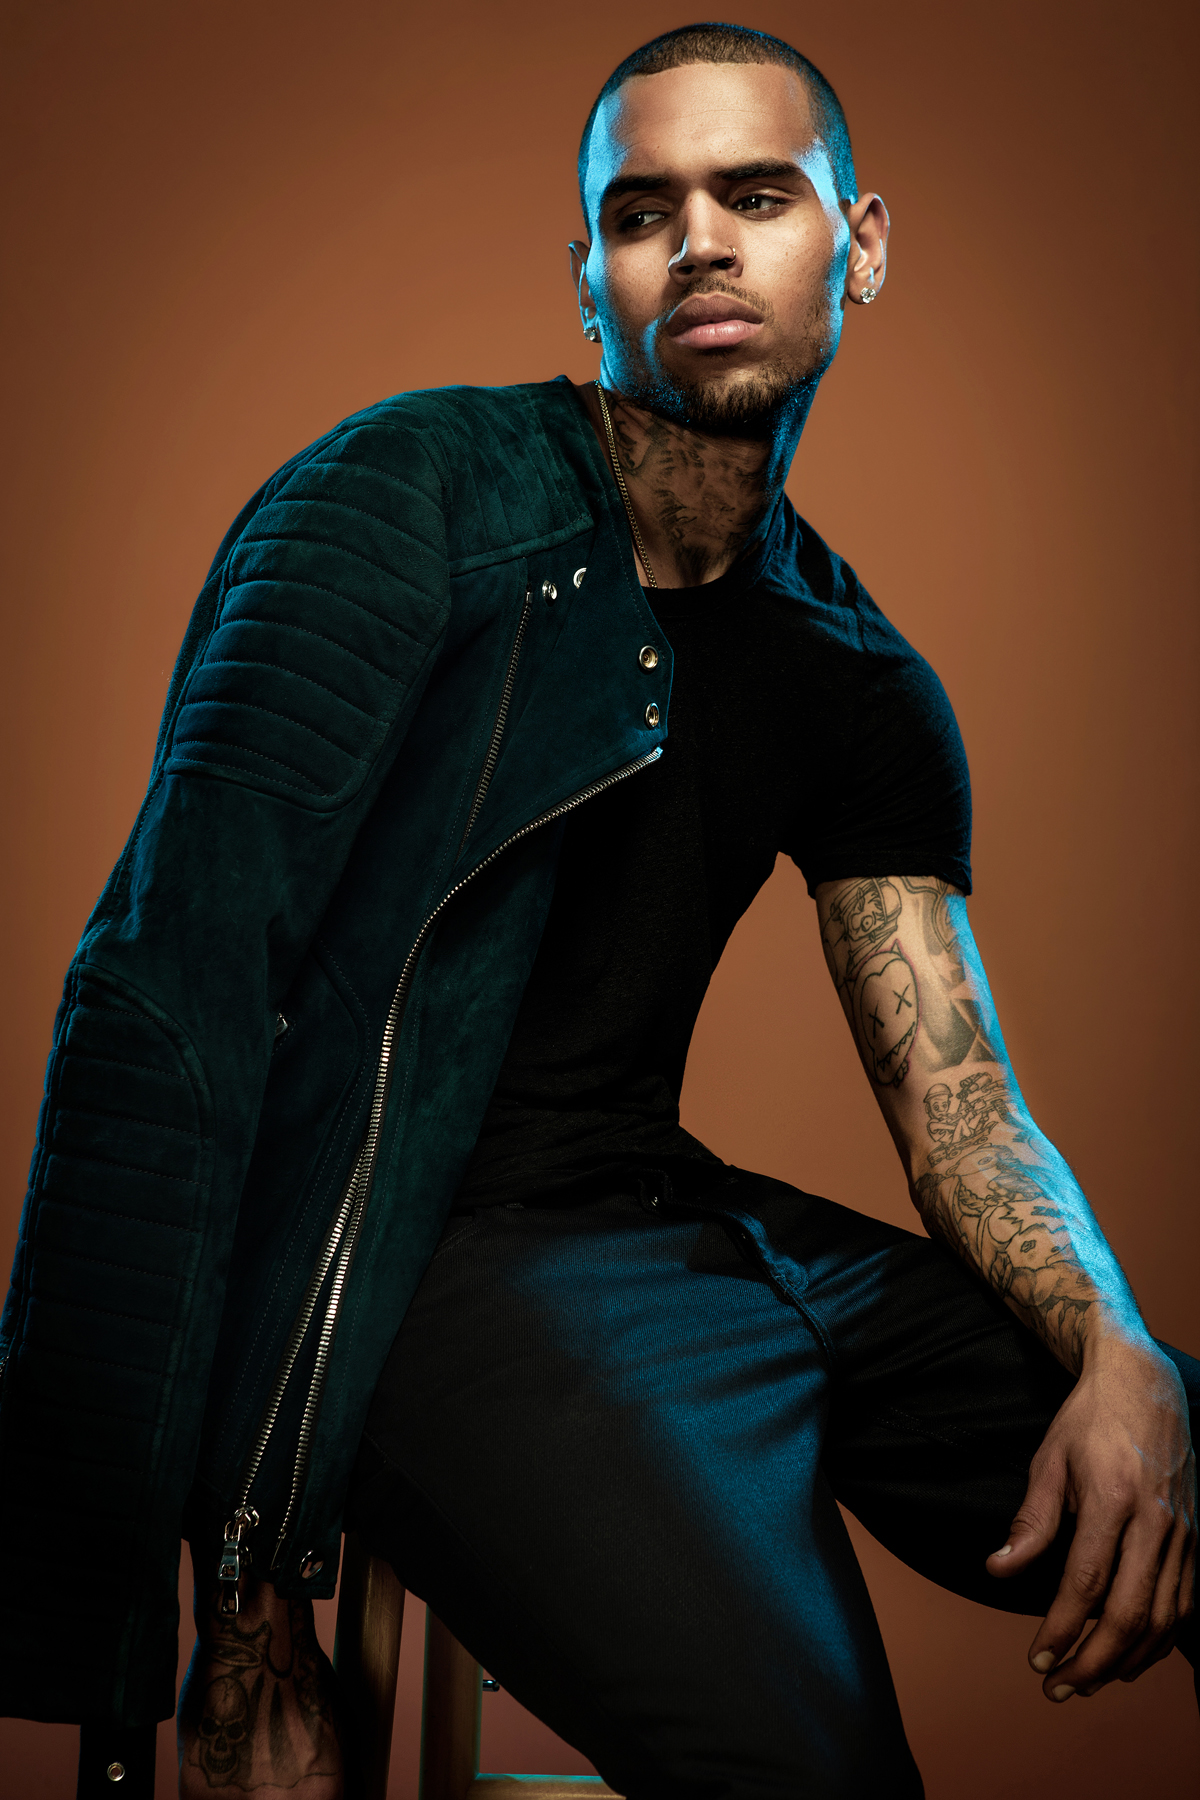 Chris Brown Photographed by Bradford Rogne